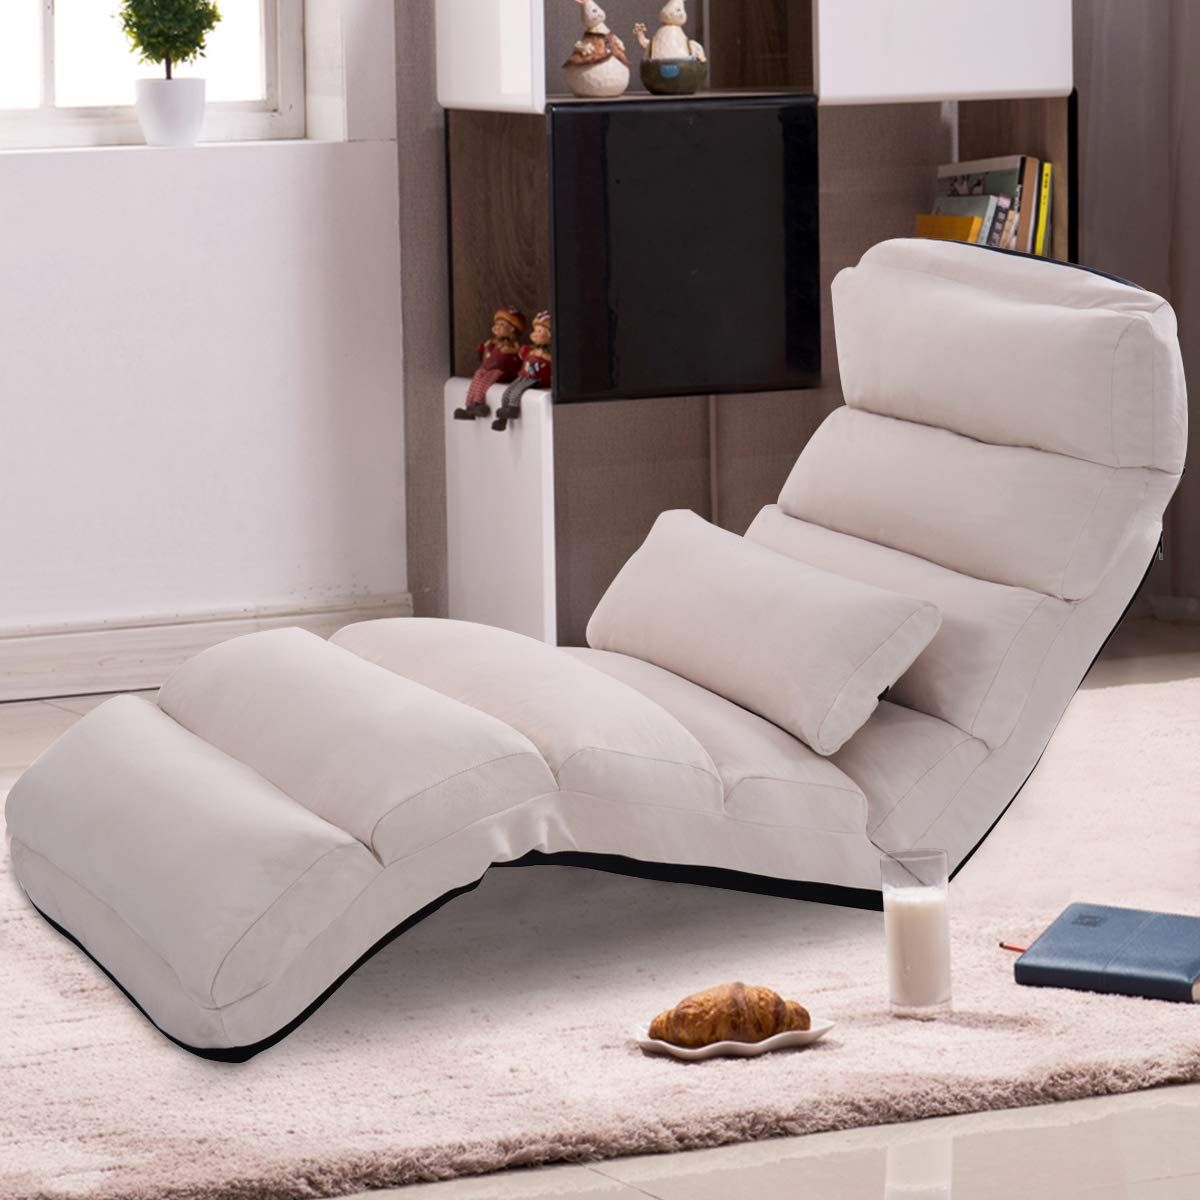 Giantex Folding Lazy Sofa Chair Stylish Sofa Couch Beds Lounge Chair W Pillow Beige Chaise Lounge Stylish Sofa Stylish Chairs